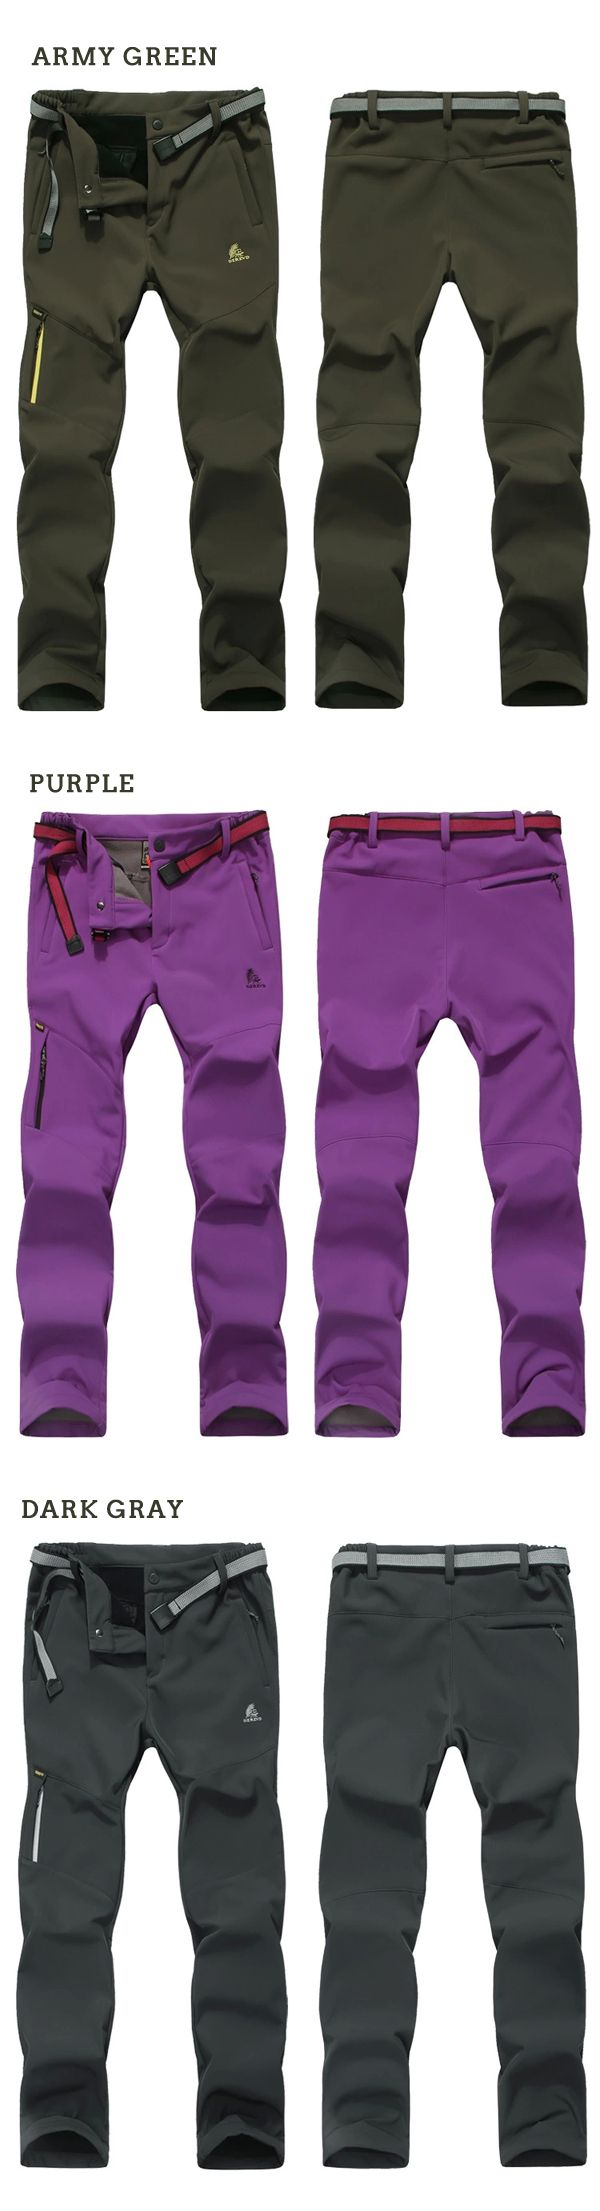 Fleece Waterproof Hiking Skiing Pant Clothing, Shoes & Jewelry - Women - women's hiking clothing - http://amzn.to/2lL1pwW